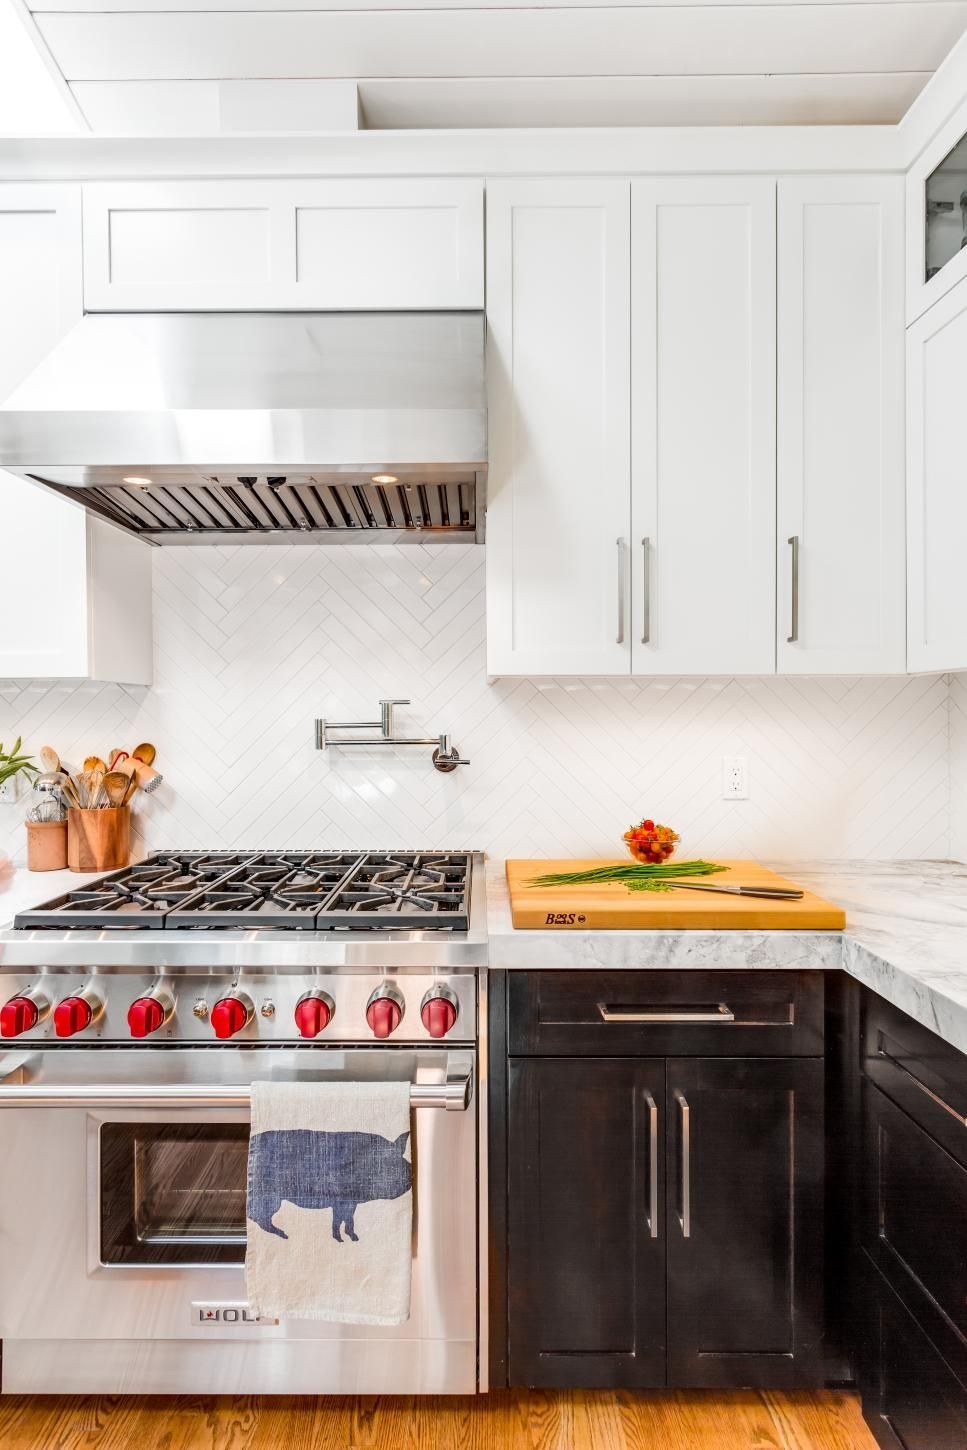 A stainless steel gas range makes cooking a breeze in this